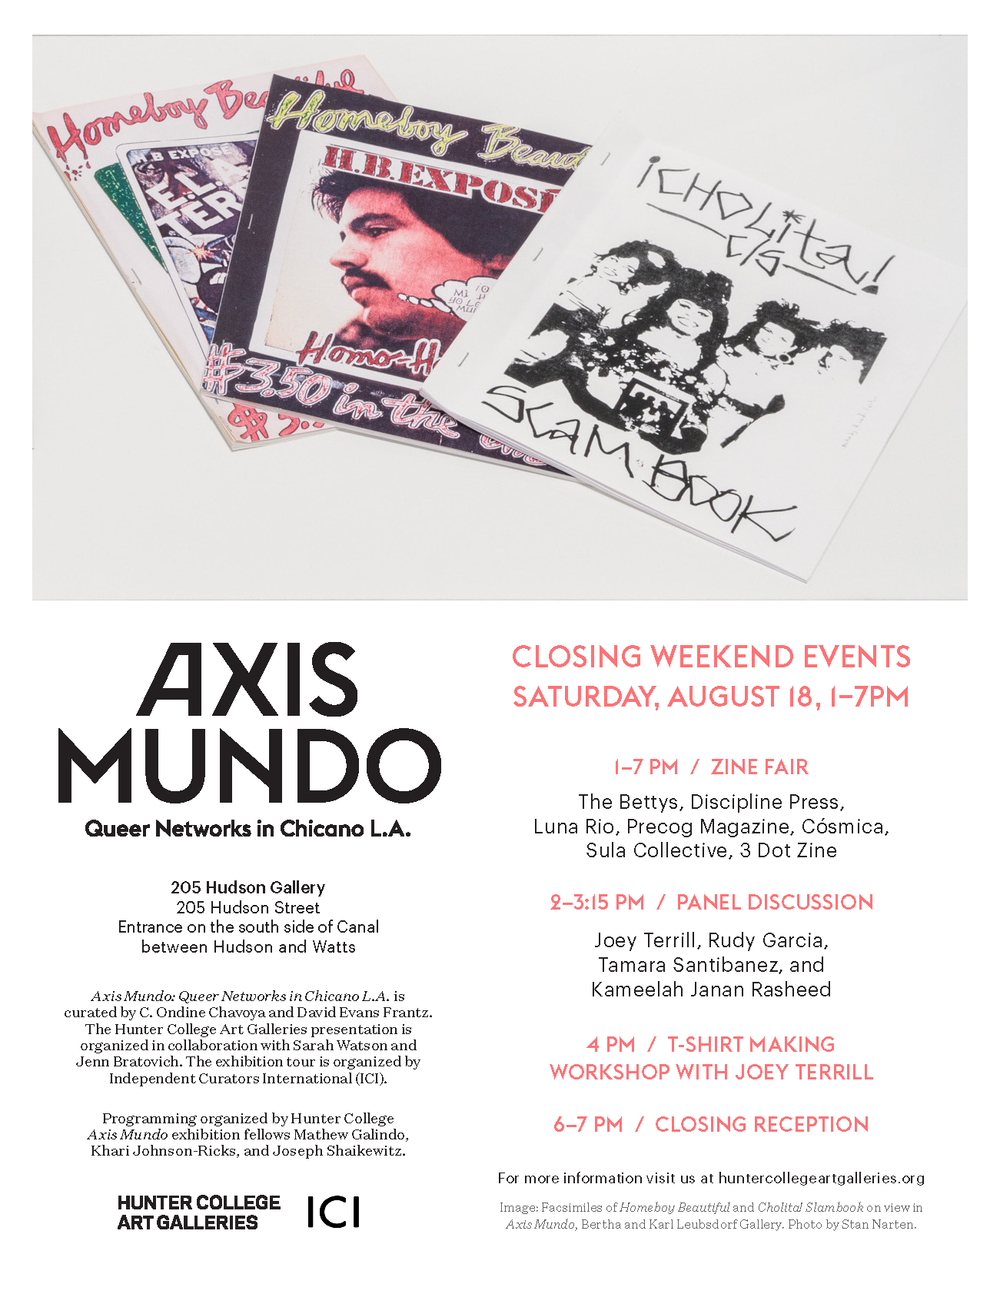 Axis Mundo Closing Weekend Events.png